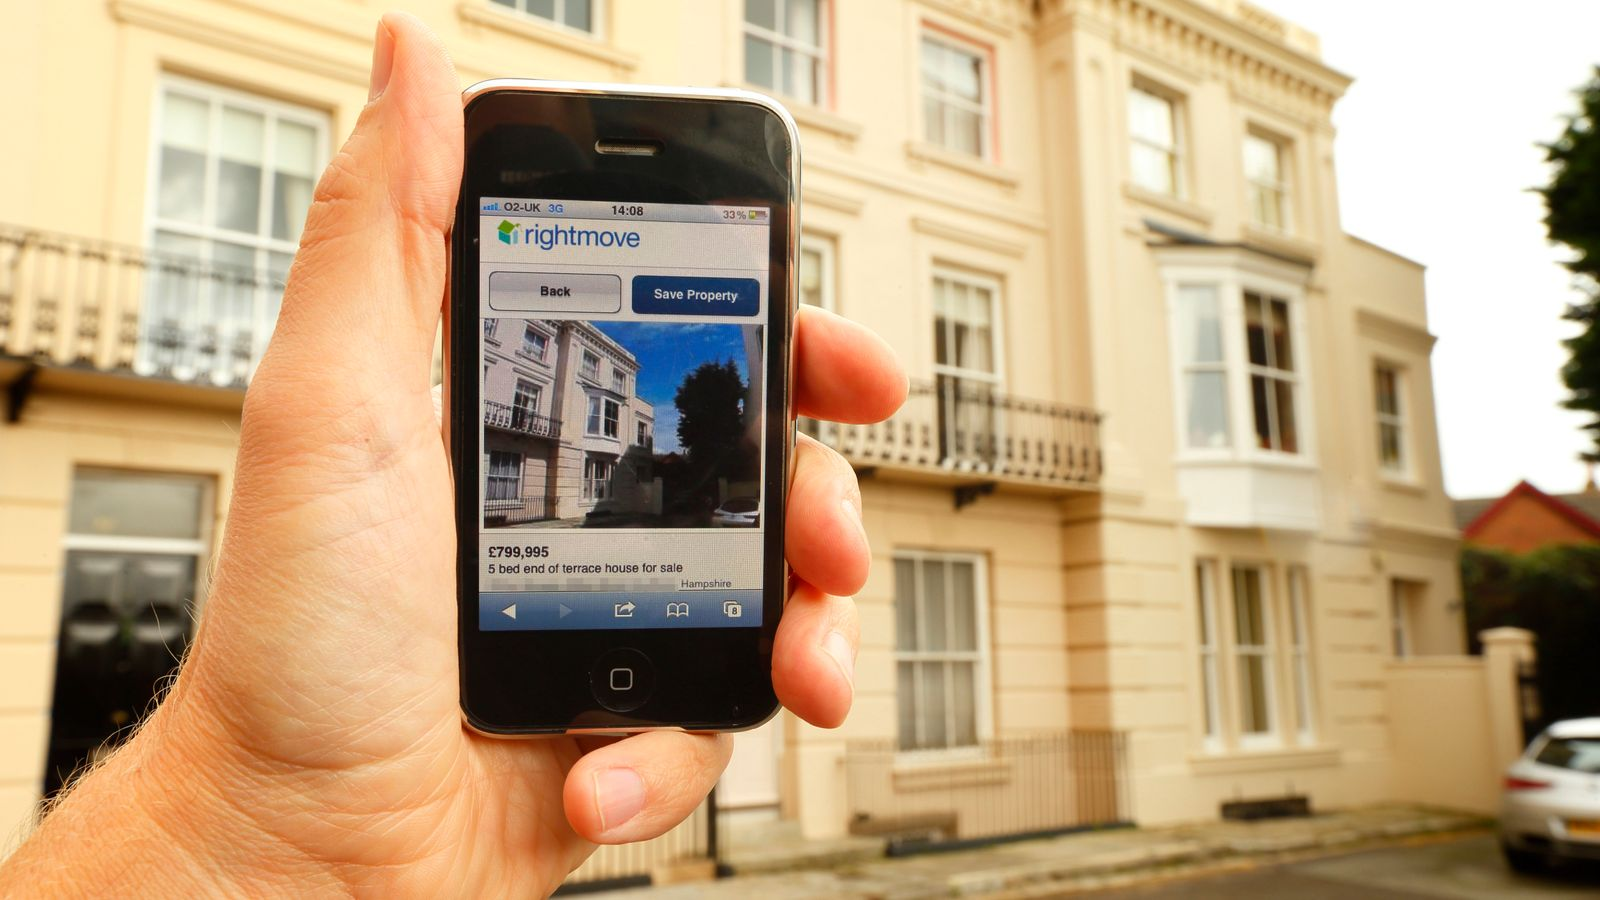 Former Shazam boss Fisher to chair Rightmove